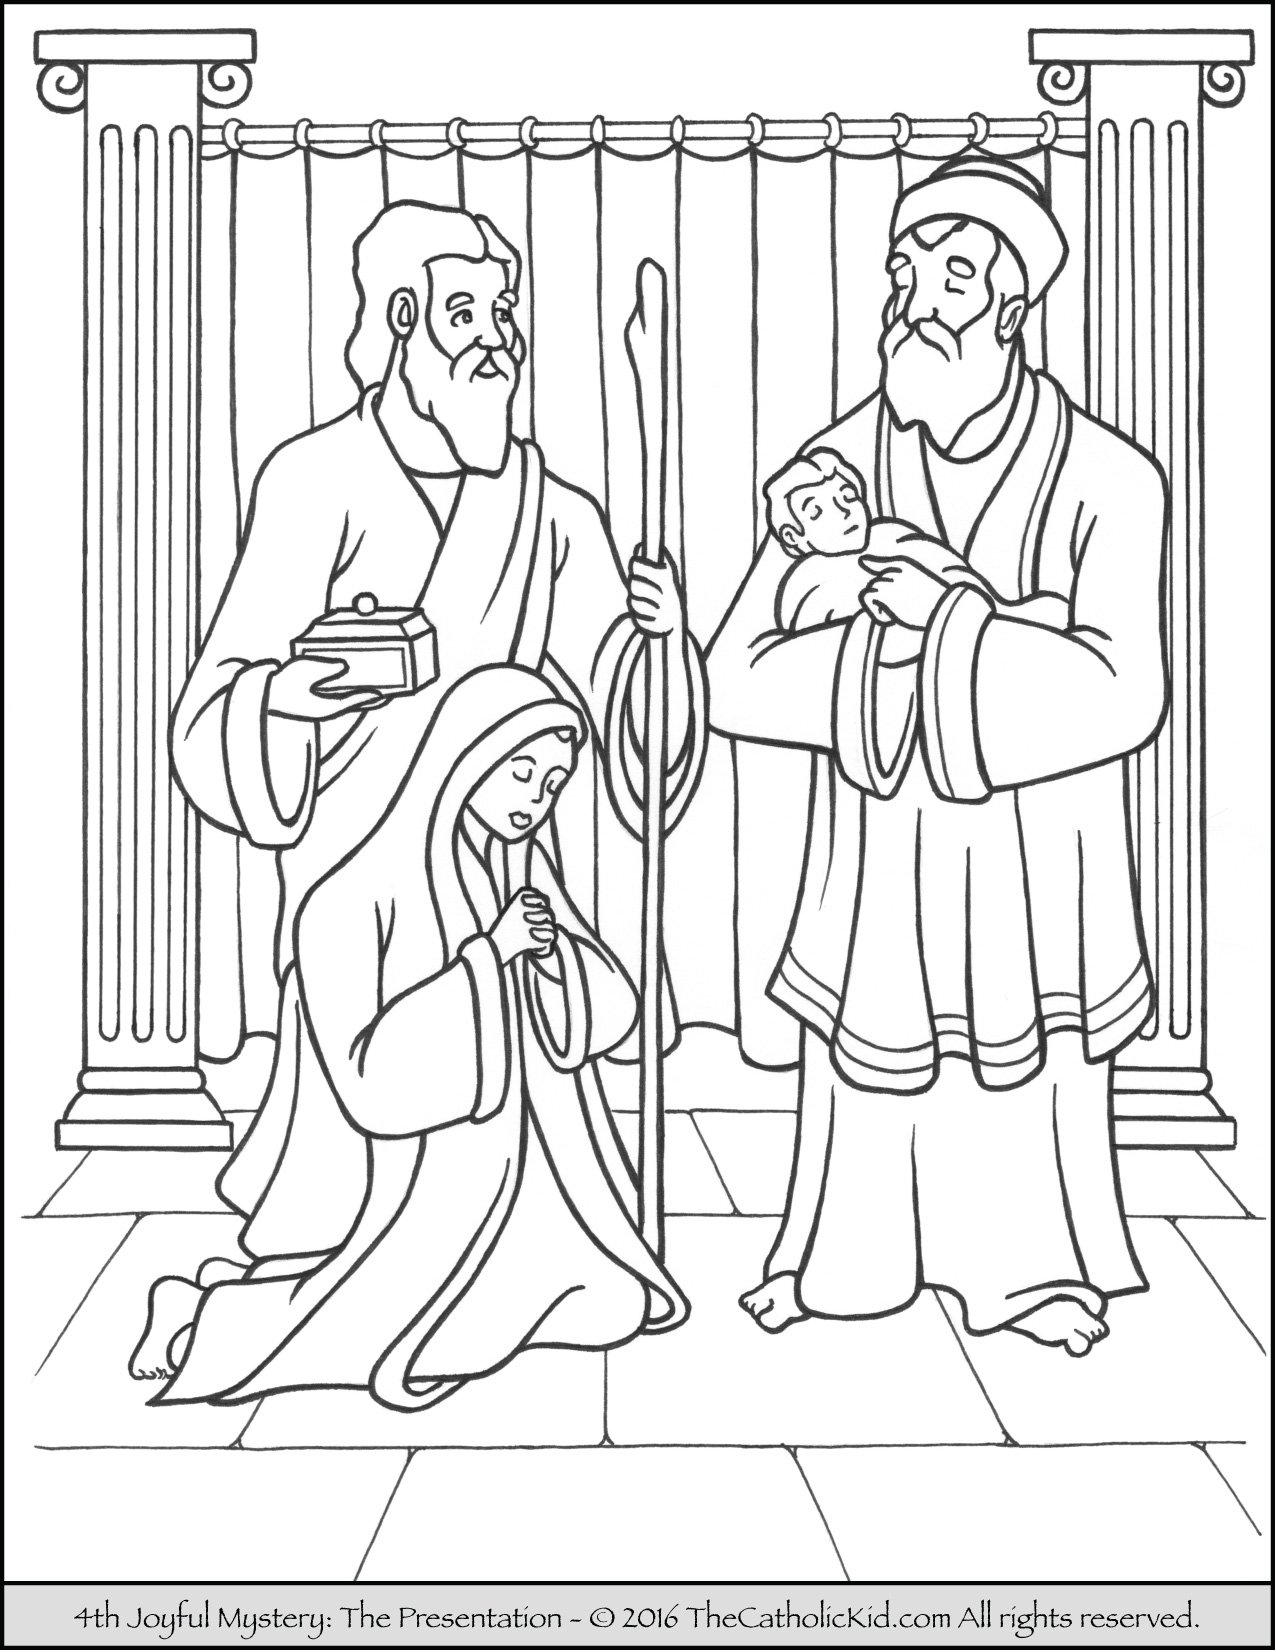 Joyful mysteries rosary coloring pages the catholic kid for Mystery picture coloring pages